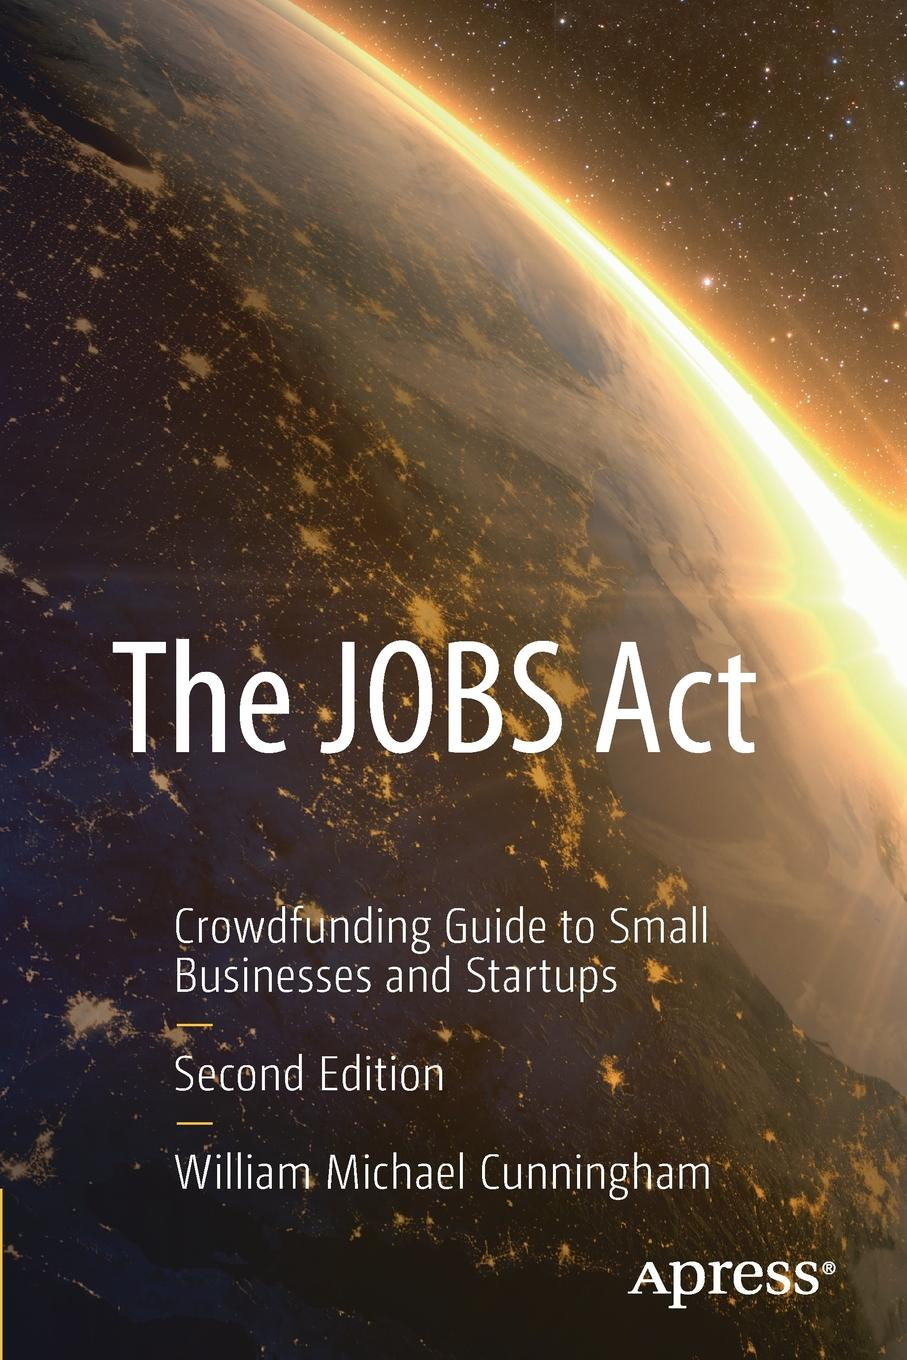 William Michael Cunningham The JOBS Act. Crowdfunding Guide to Small Businesses and Startups crowdfunding